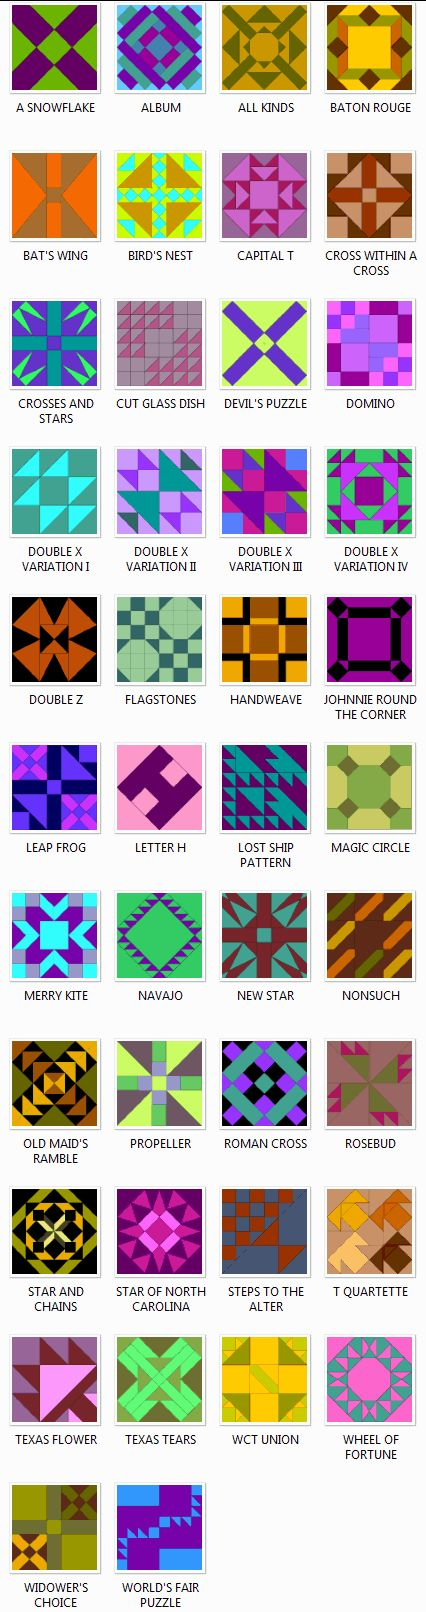 Image Detail for - Ladies Art Company Quilt Block Patterns